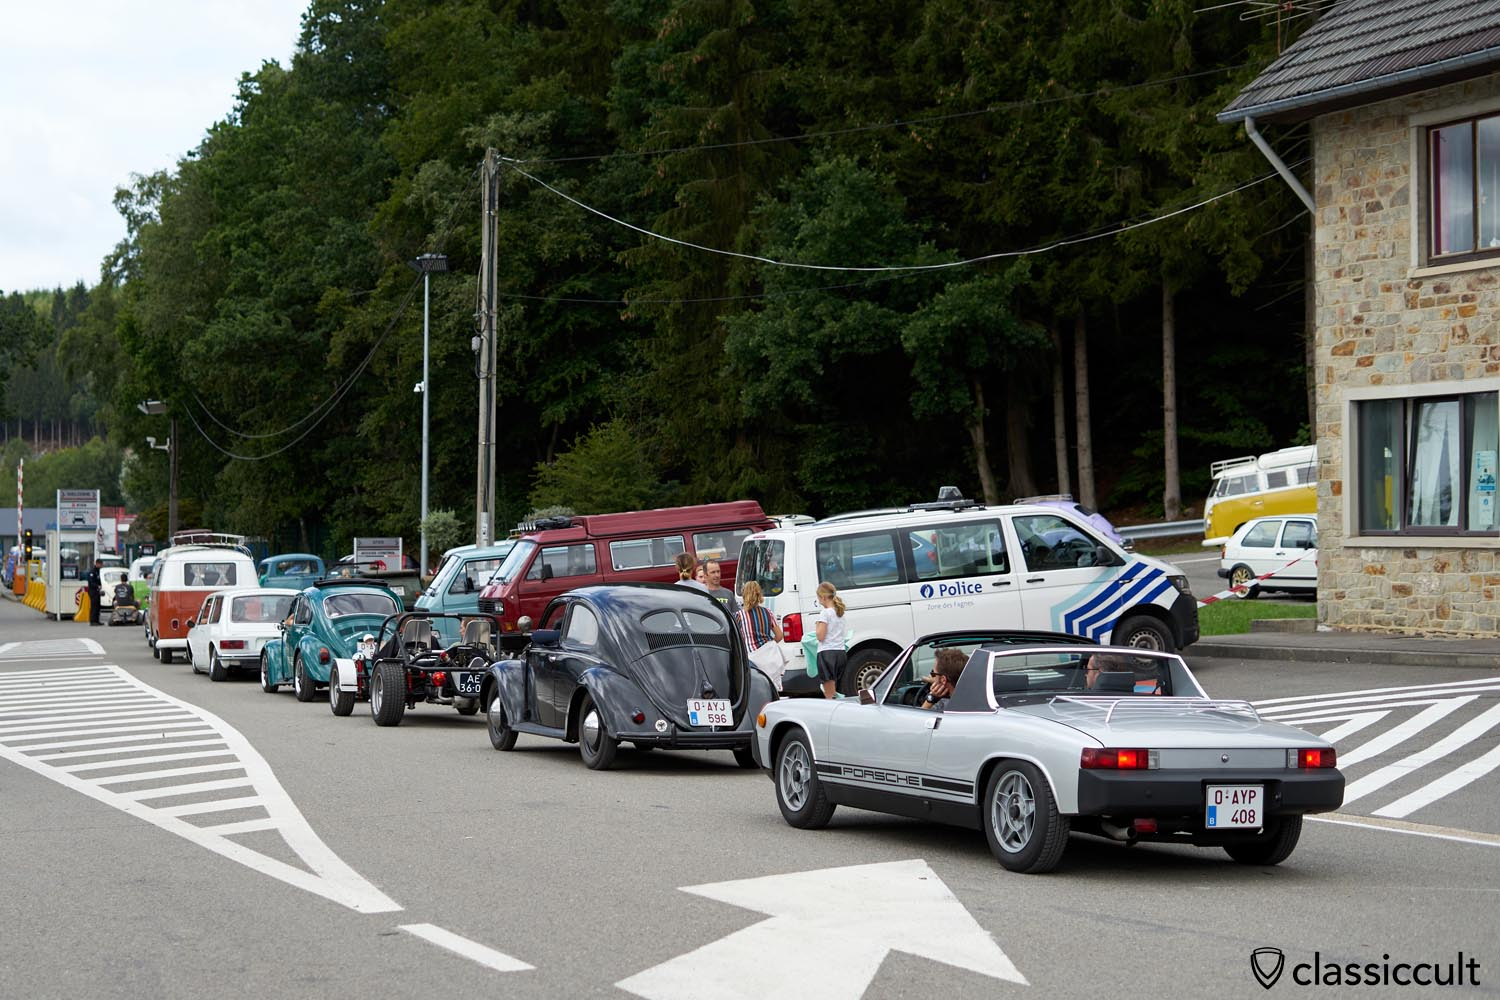 traffic jam before the tunnel, Porsche 914, Split Bug, Beach Buggy, Bus